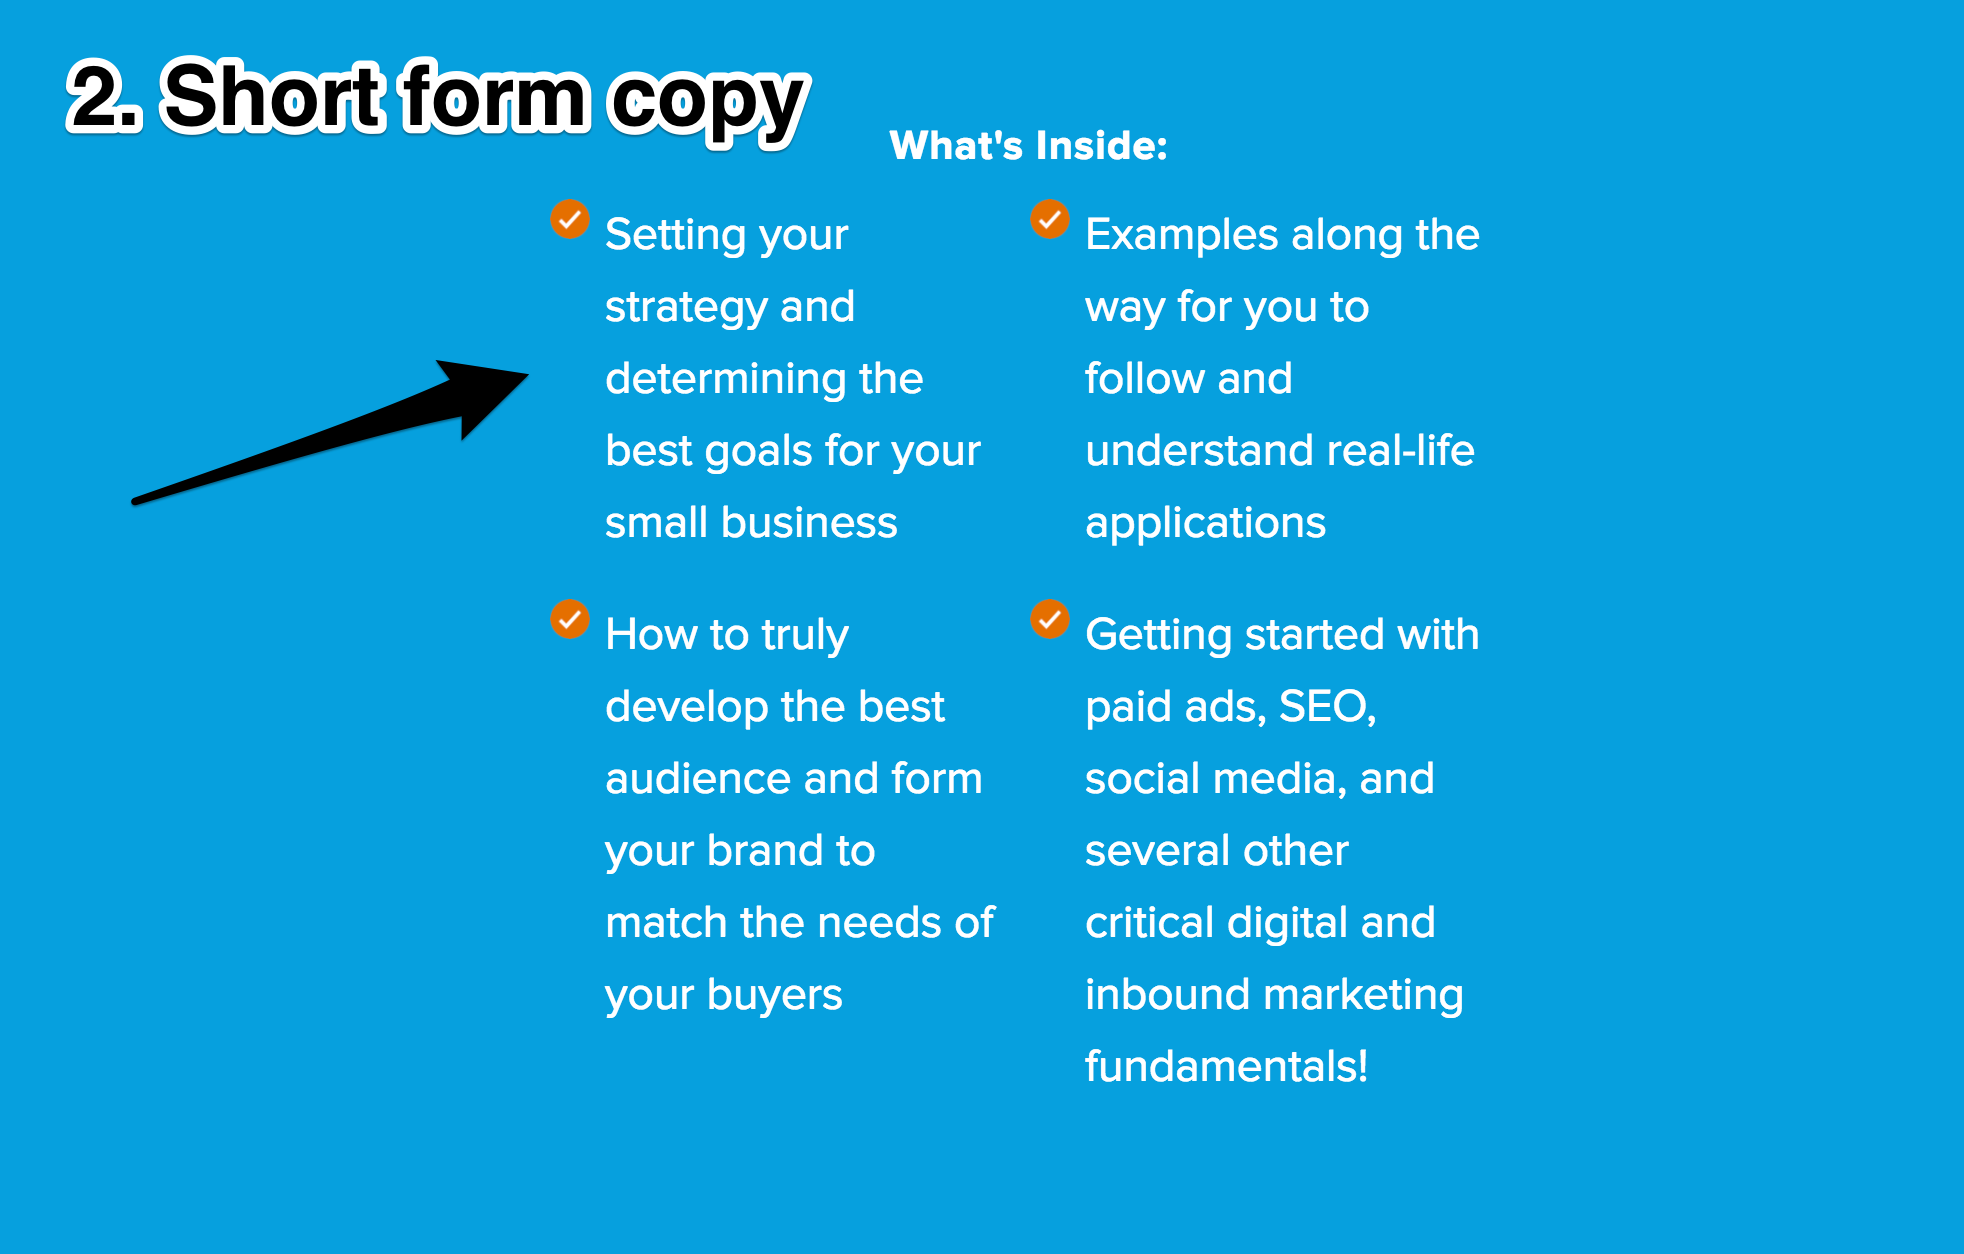 Screenshot showing short form copy by hubspot